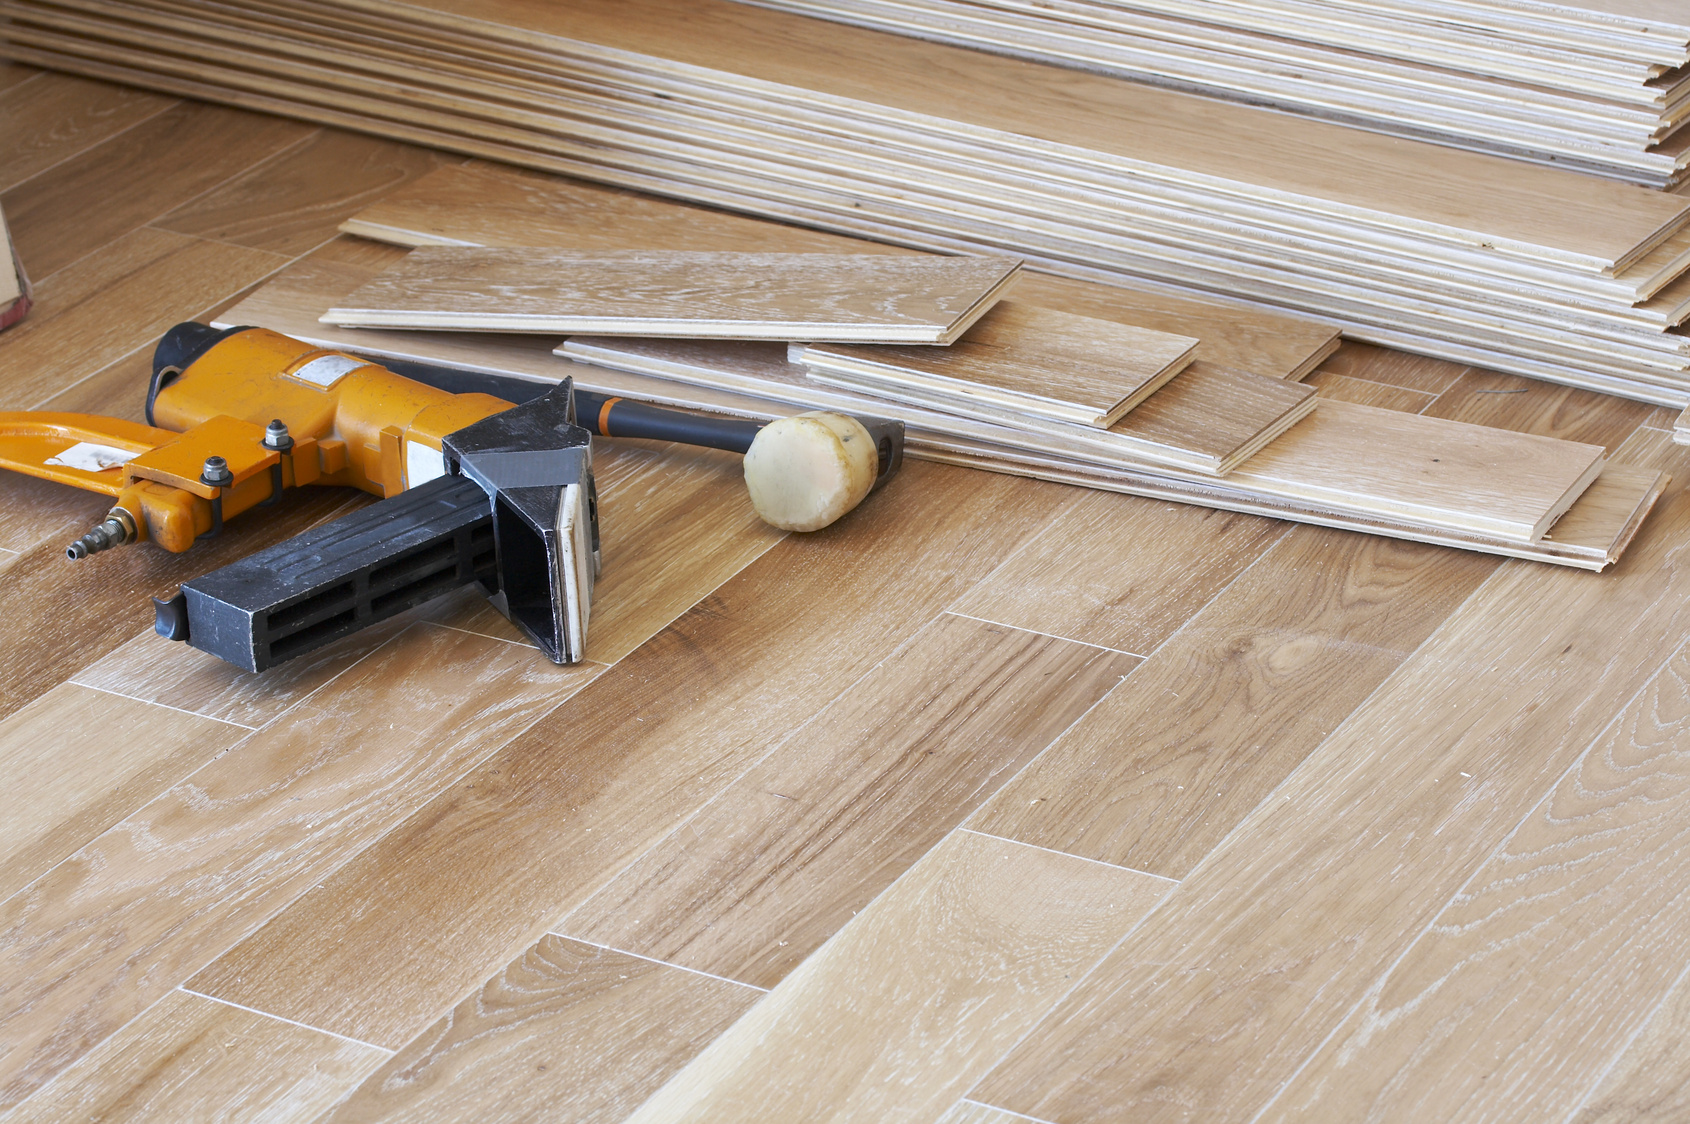 The Flooring Store Of Jacksonville - 6139 103rd St, Jacksonville, FL 32210